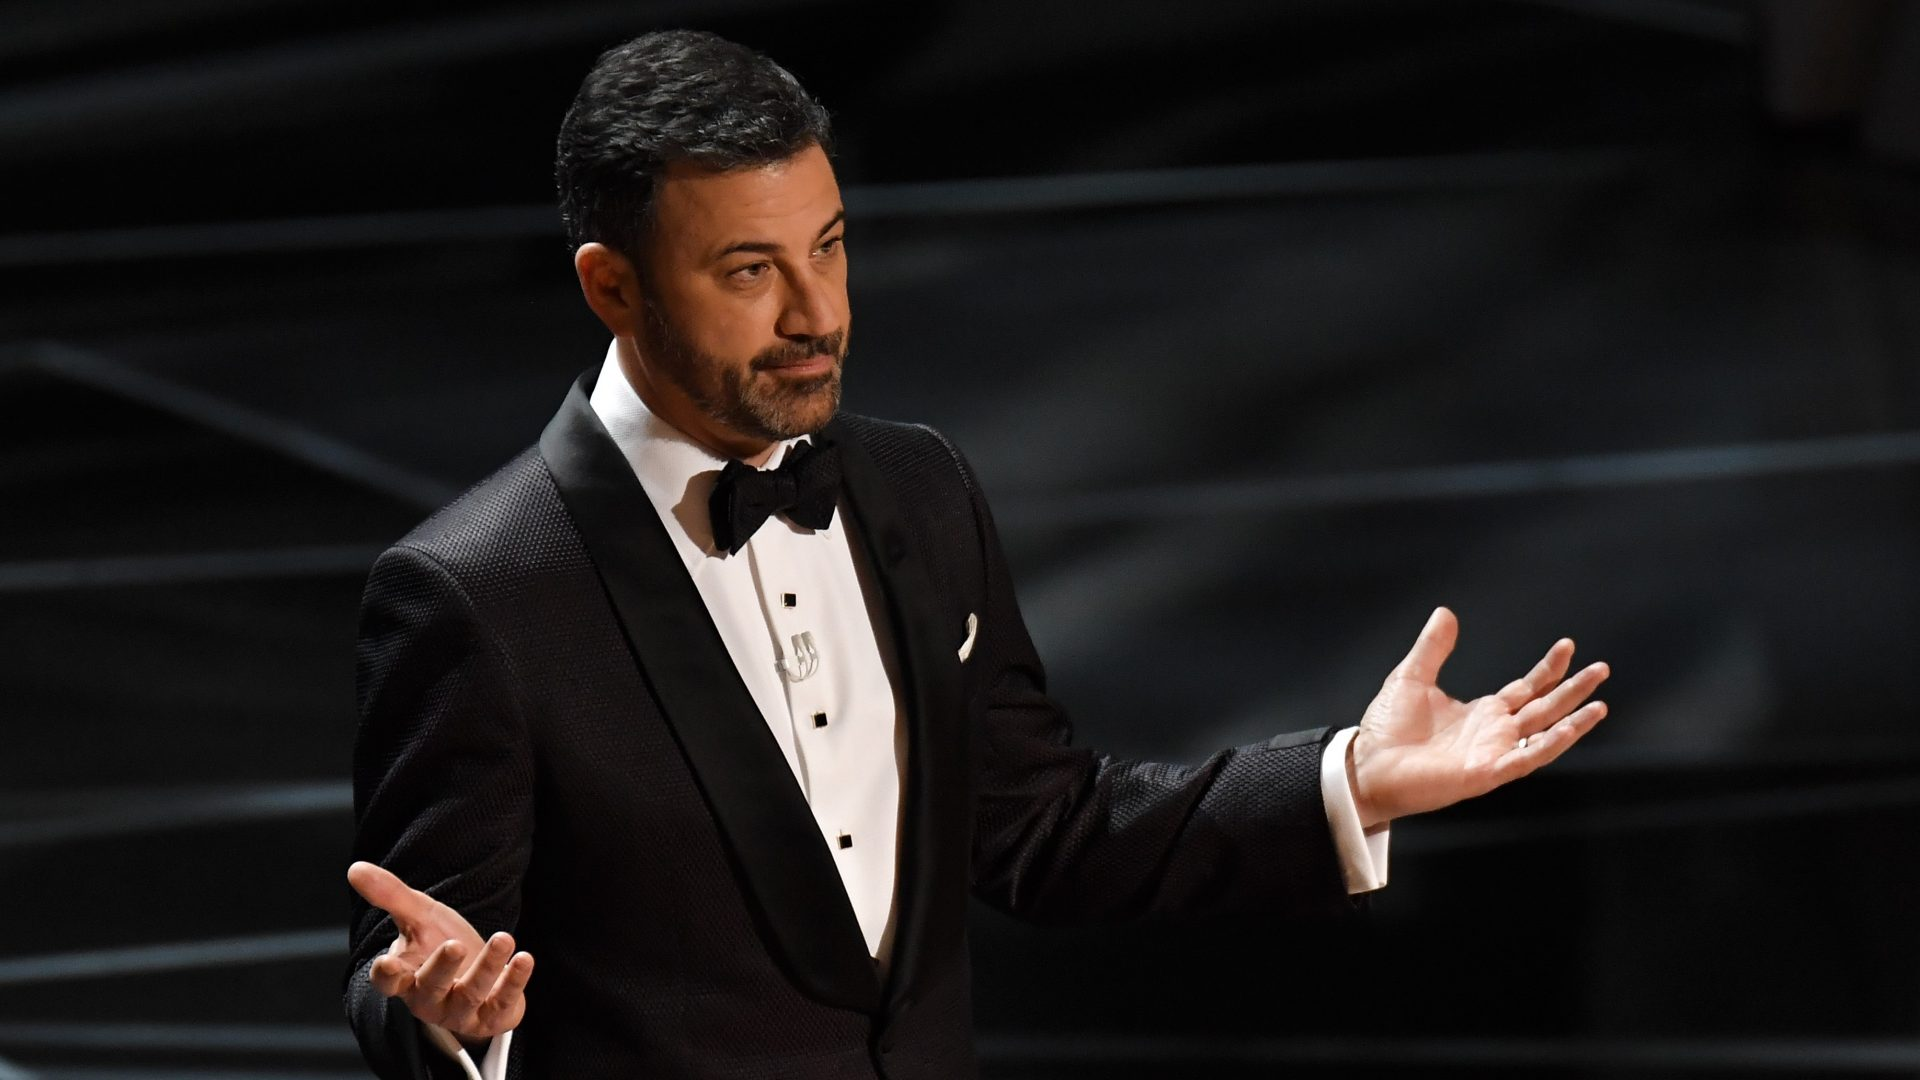 Mandatory Credit: Photo by Rob Latour/Shutterstock (9446184pj)Jimmy Kimmel90th Annual Academy Awards, Show, Los Angeles, USA - 04 Mar 2018.